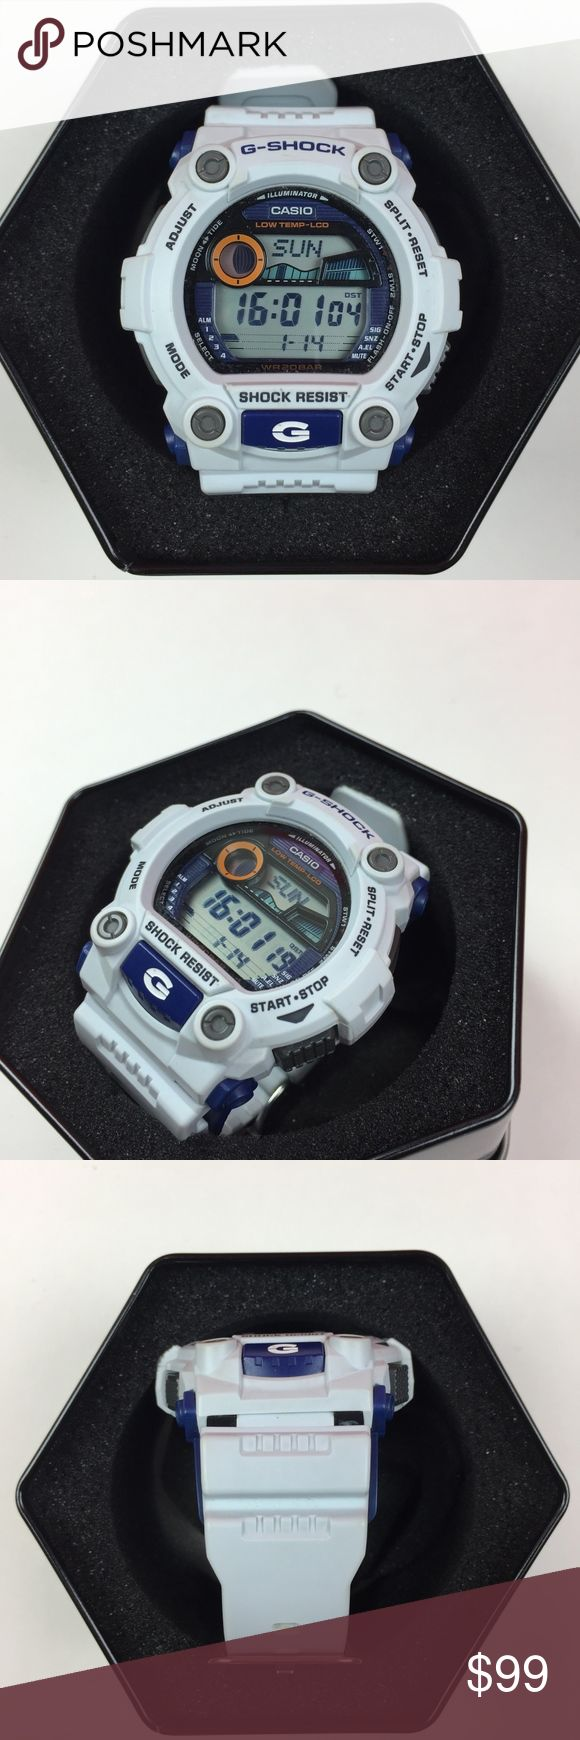 White & Navy Blue Casio G-Shock with case This is an authentic mens G-shock watch. It is in good working condition. It will come with the original box. It is shock Resistant and water resistant. It glow orange when you press the G button. :) It has an adjustable strap to fit any size. Casio Accessories Watches